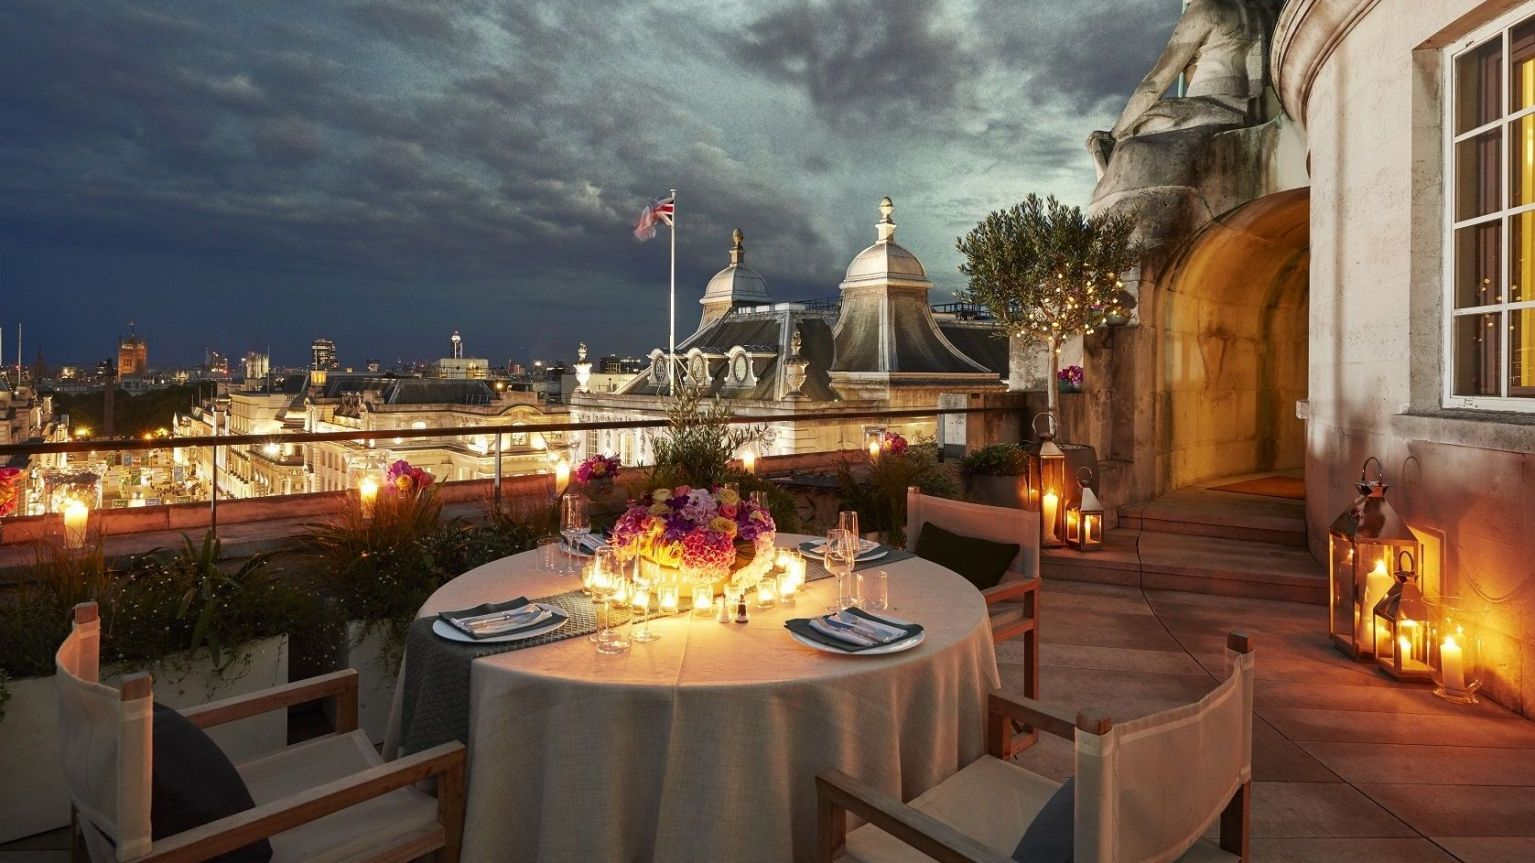 Dome penthouse hotel cafe royal london terrace